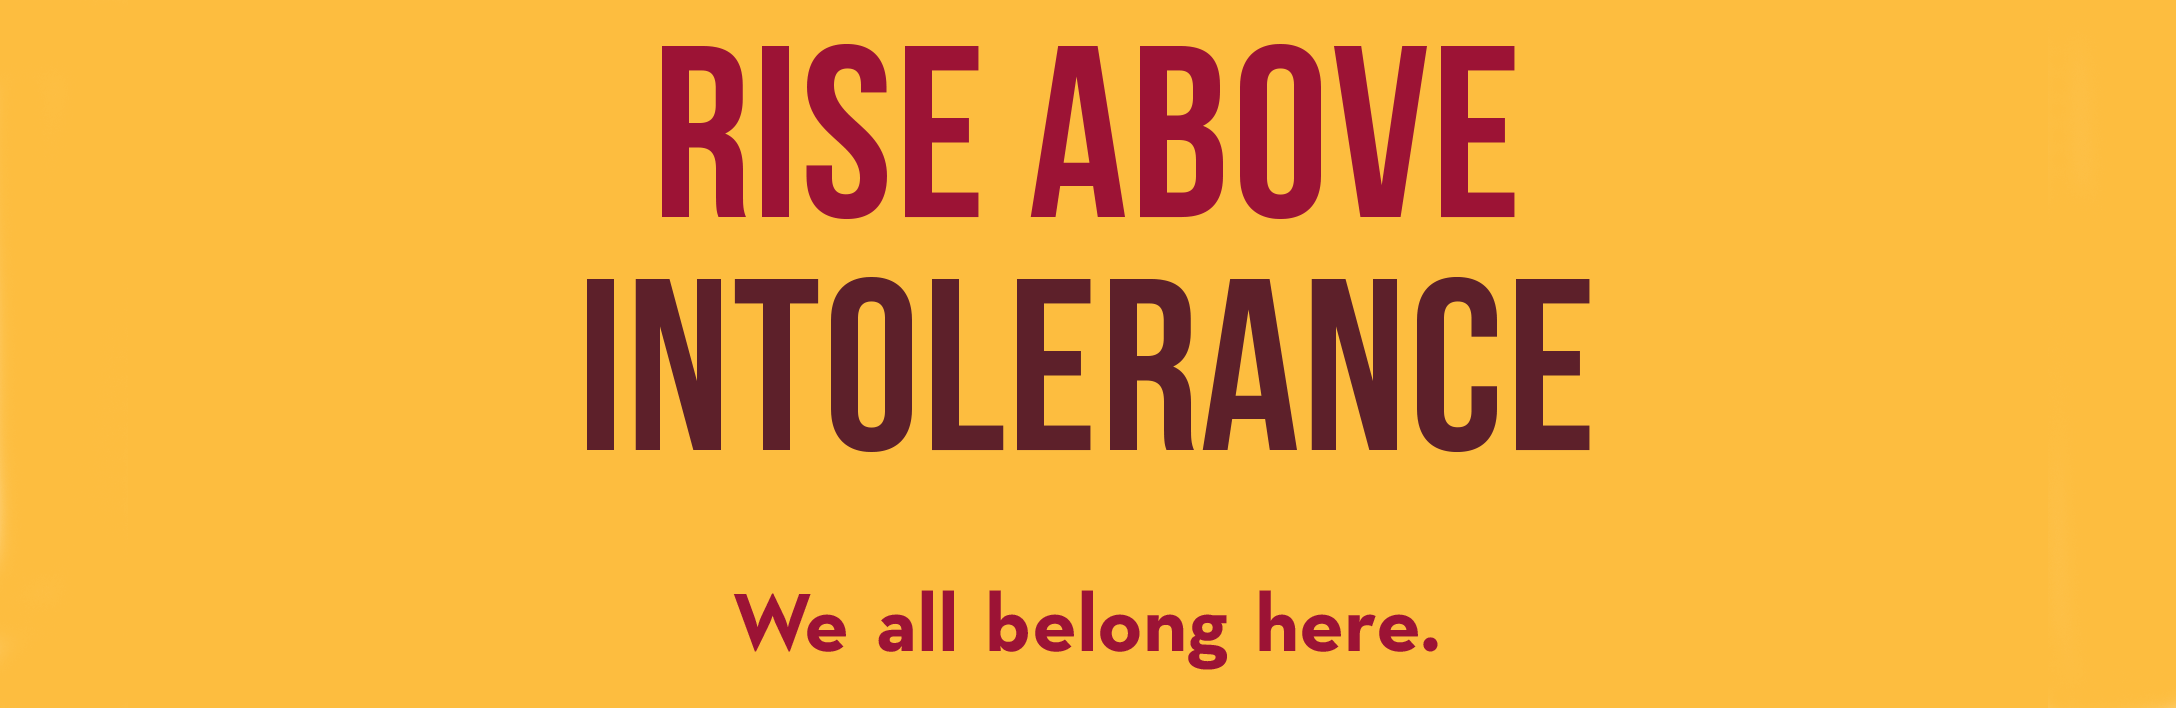 rise above intolerance